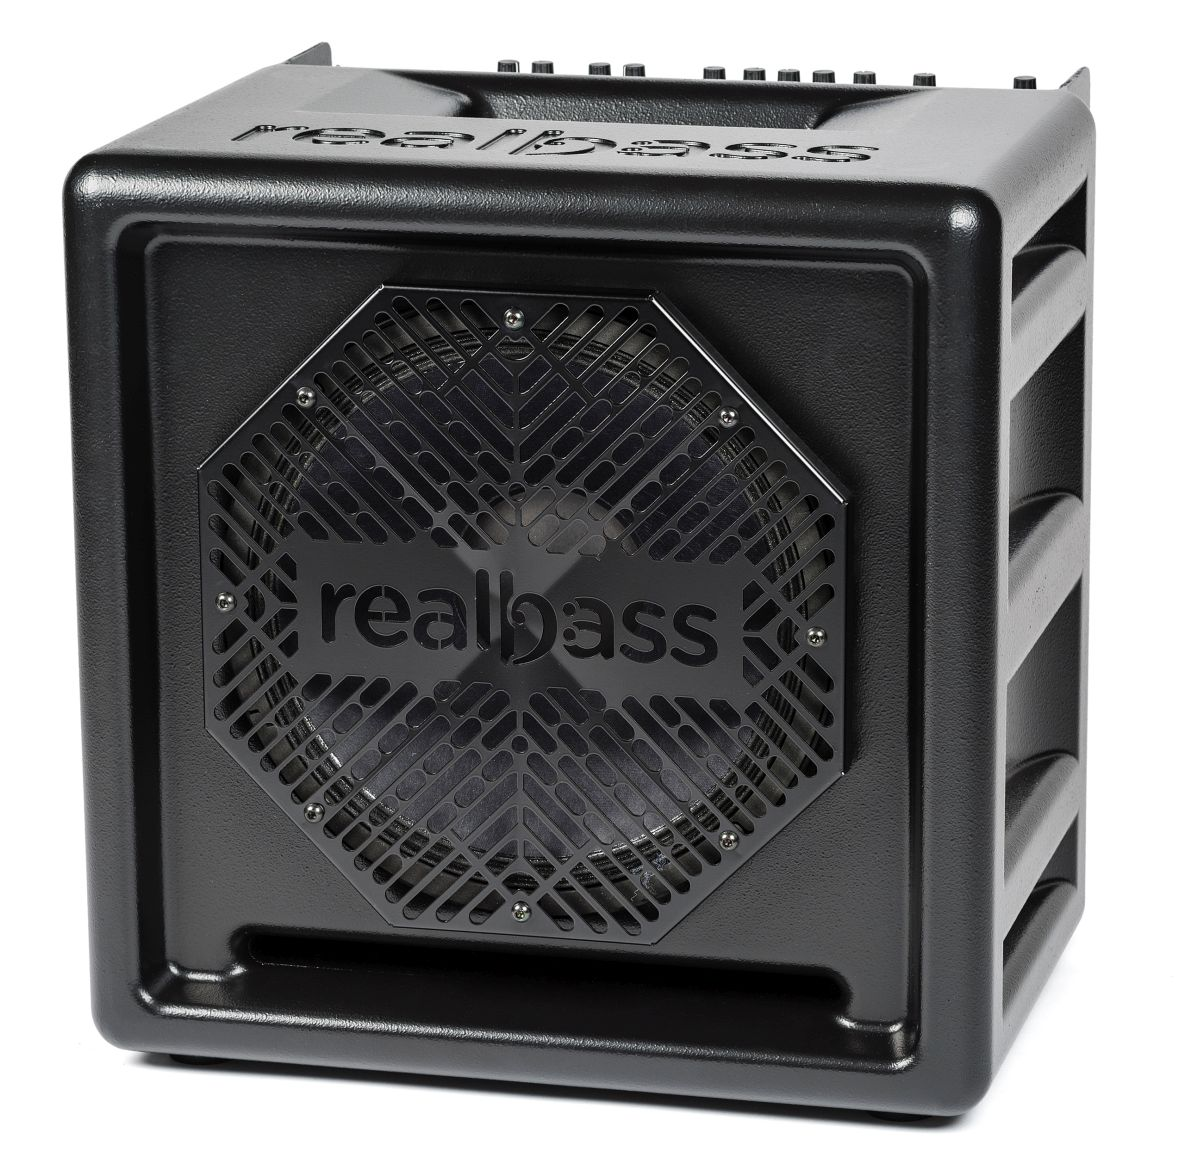 New at Hot Wire: - RealbassUltimate Bass Amplification